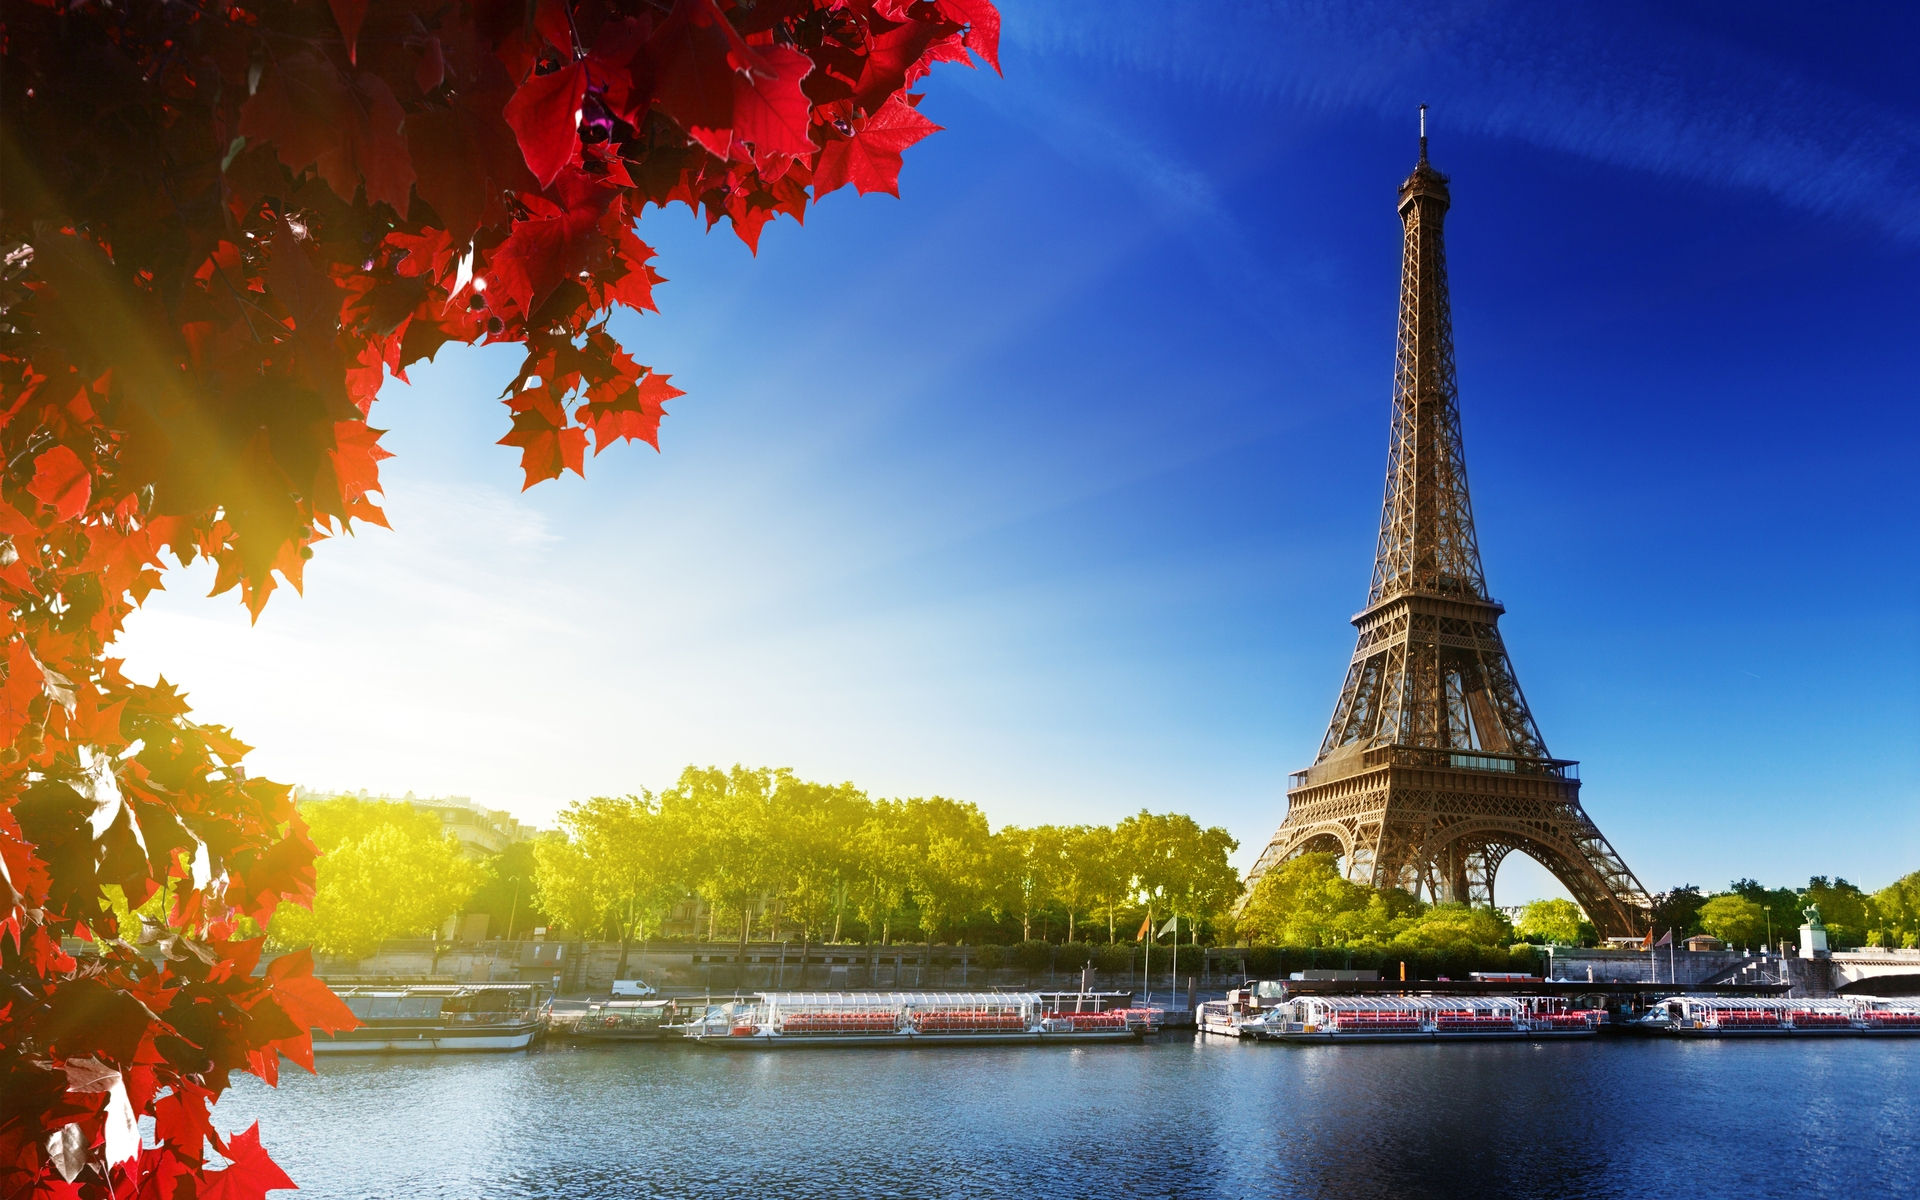 Eiffel tower - Things to do in Paris